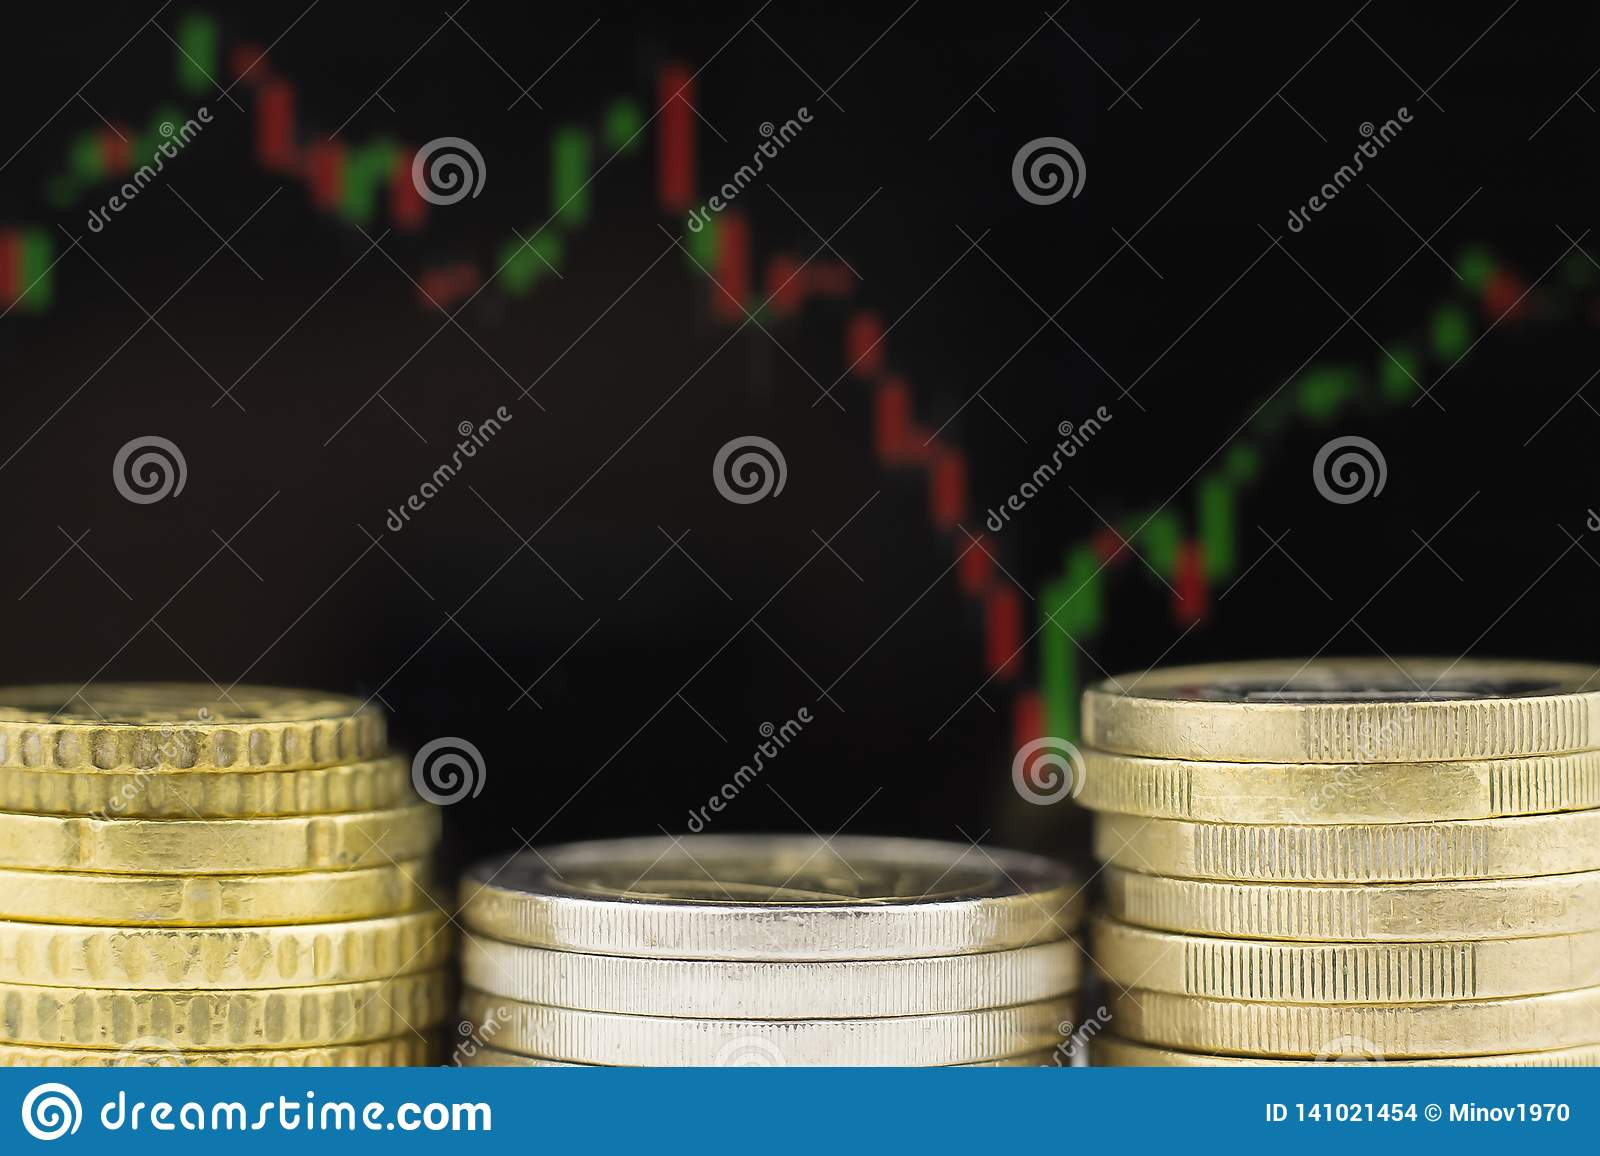 Metal coins against the background of the financial schedule